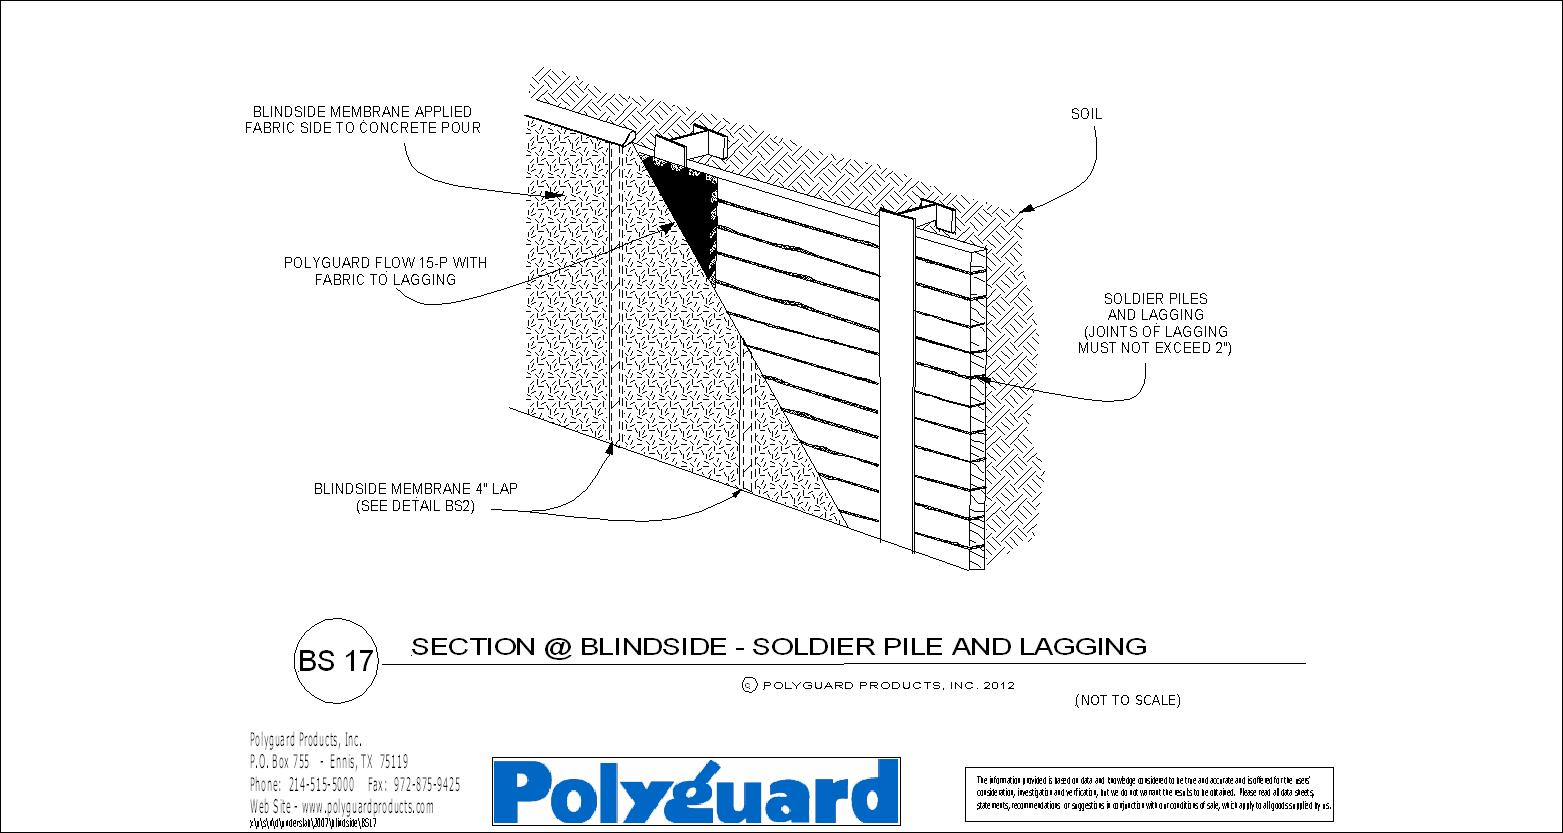 Index Of Products Architectural Details Images Jpg 02